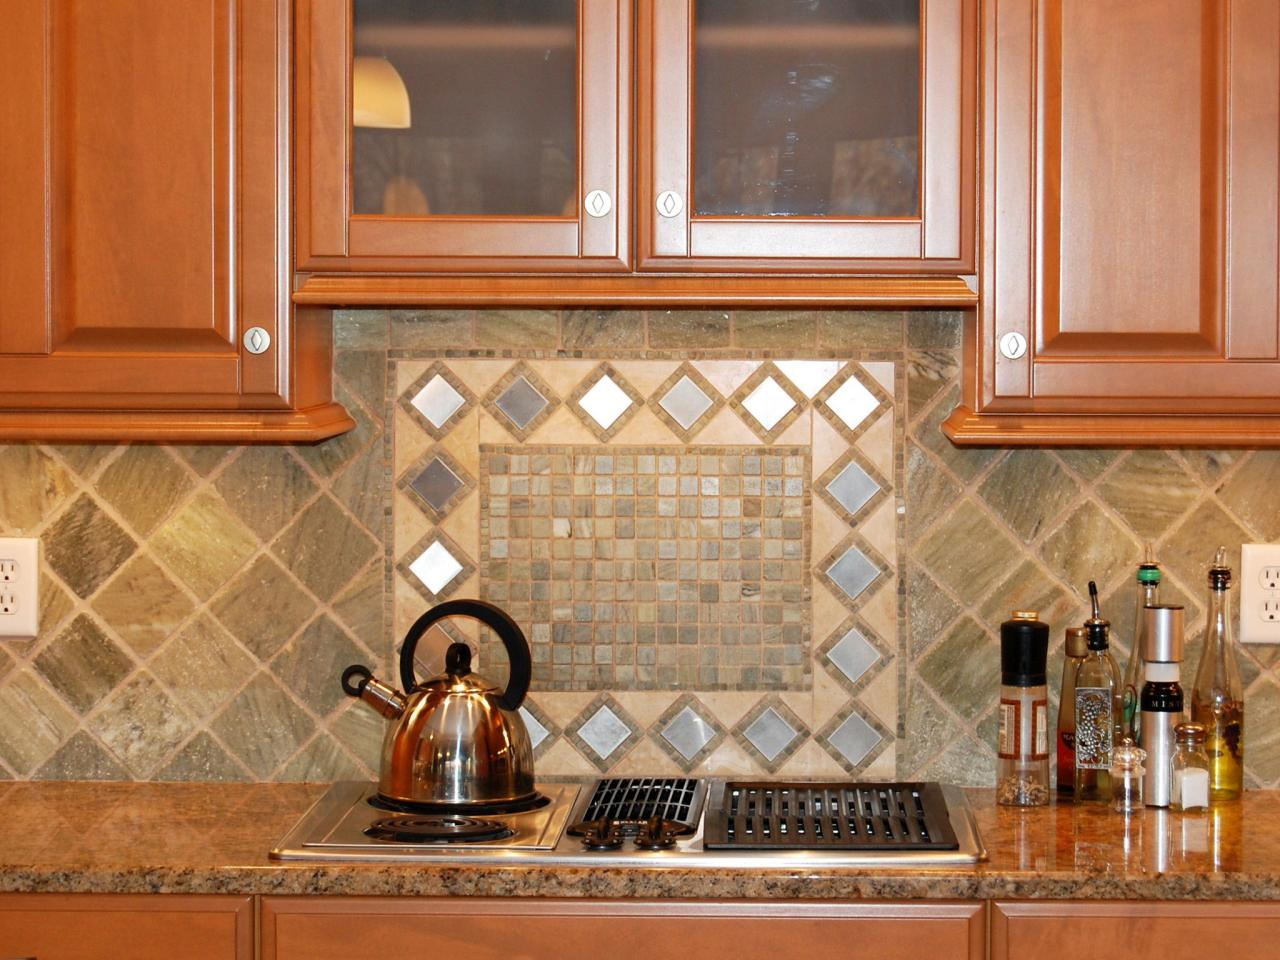 mosaic tile kitchen backsplash - Kitchen Tiling Ideas